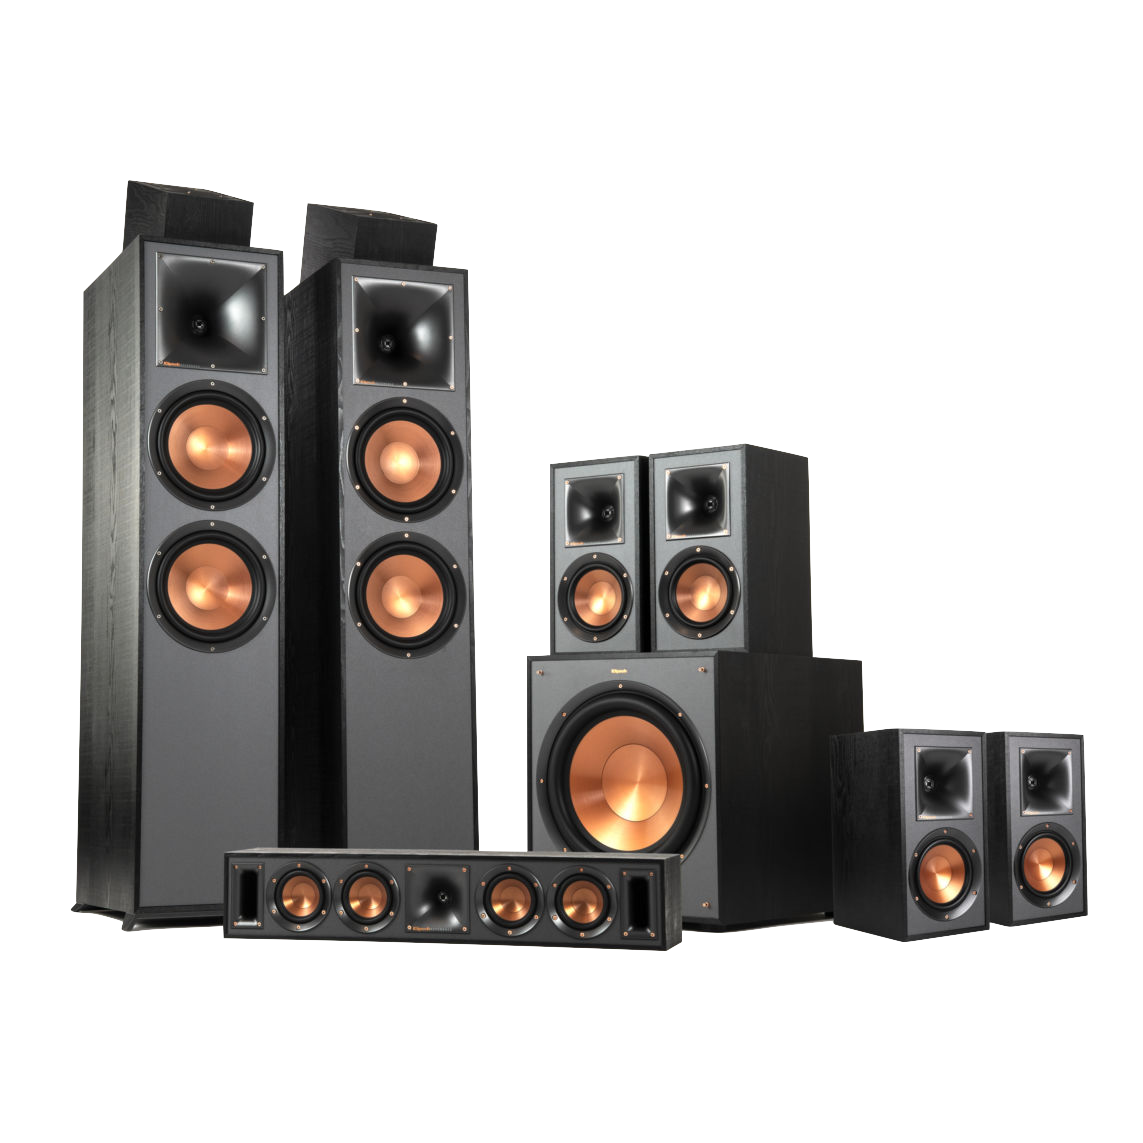 Floor & wall mounted 7.1surround sound - Smarter Homes of Austin's enhanced 7.1 home theater installation packages with floor standing and on wall speakers.